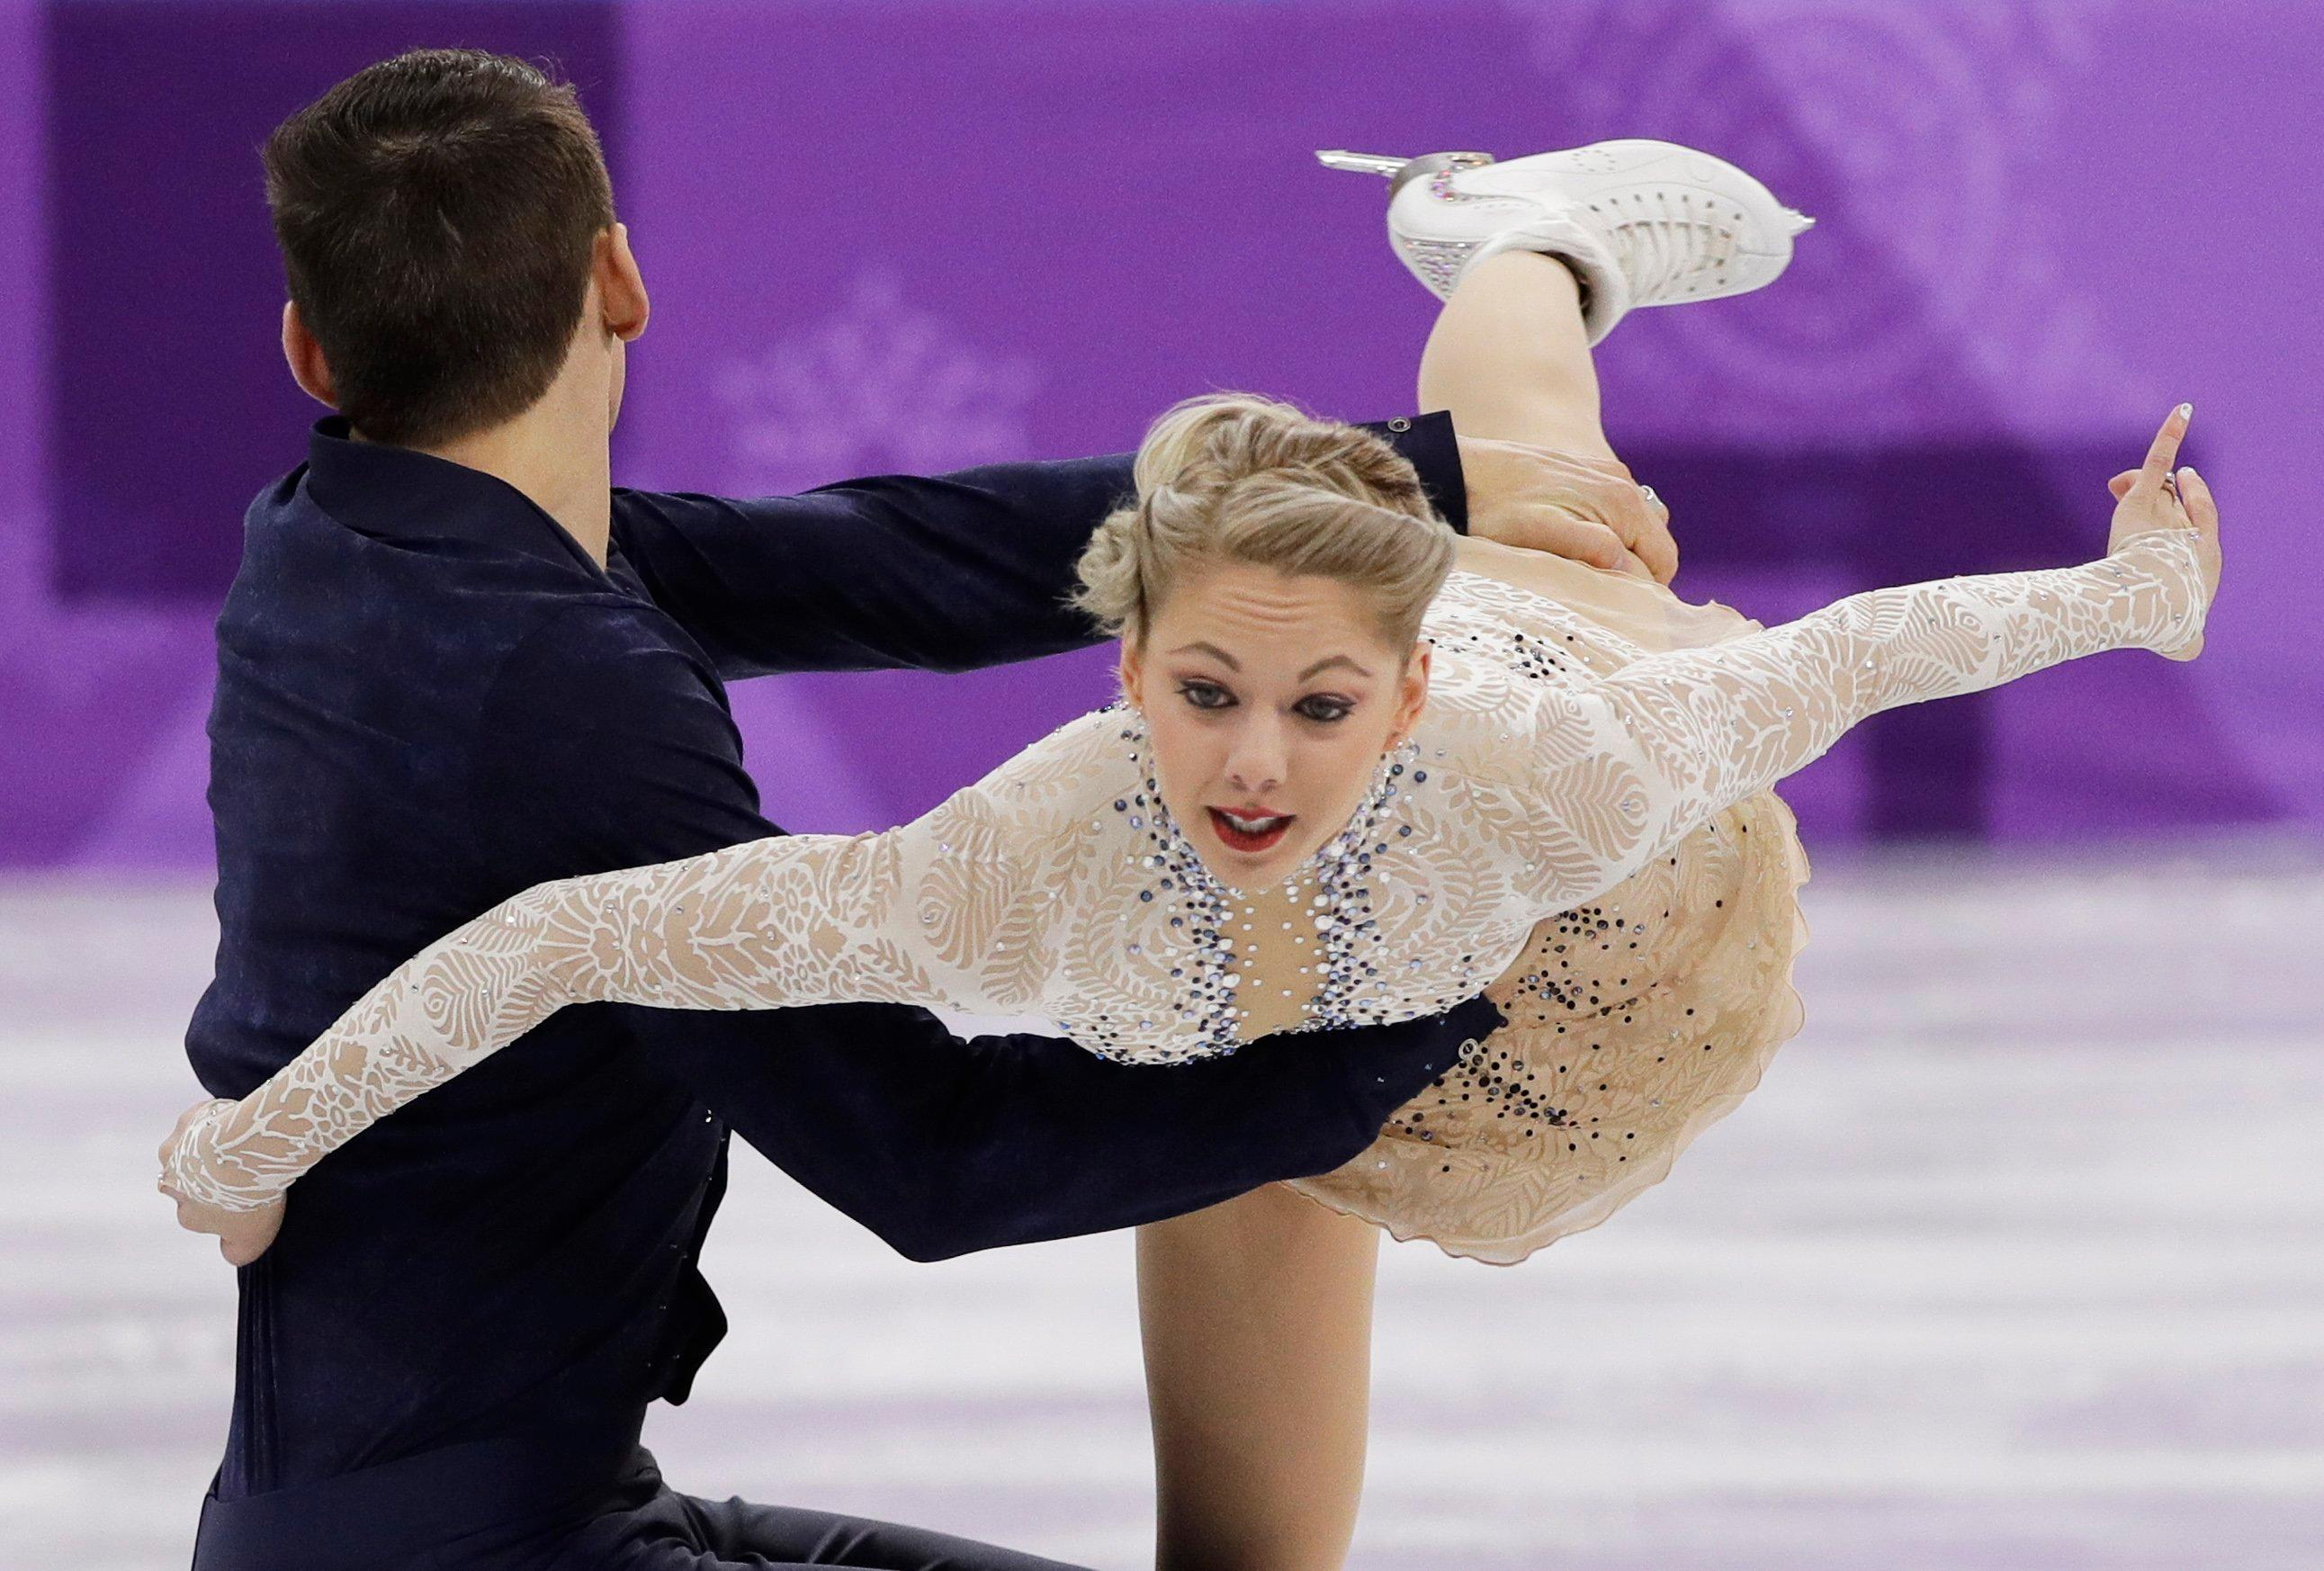 Alexa Scimeca Knierim and Chris Knierim of the USA perform in the pair skating short program team event at the 2018 Winter Olympics in Gangneung, South Korea, Friday, Feb. 9, 2018. (AP Photo/David J. Phillip)